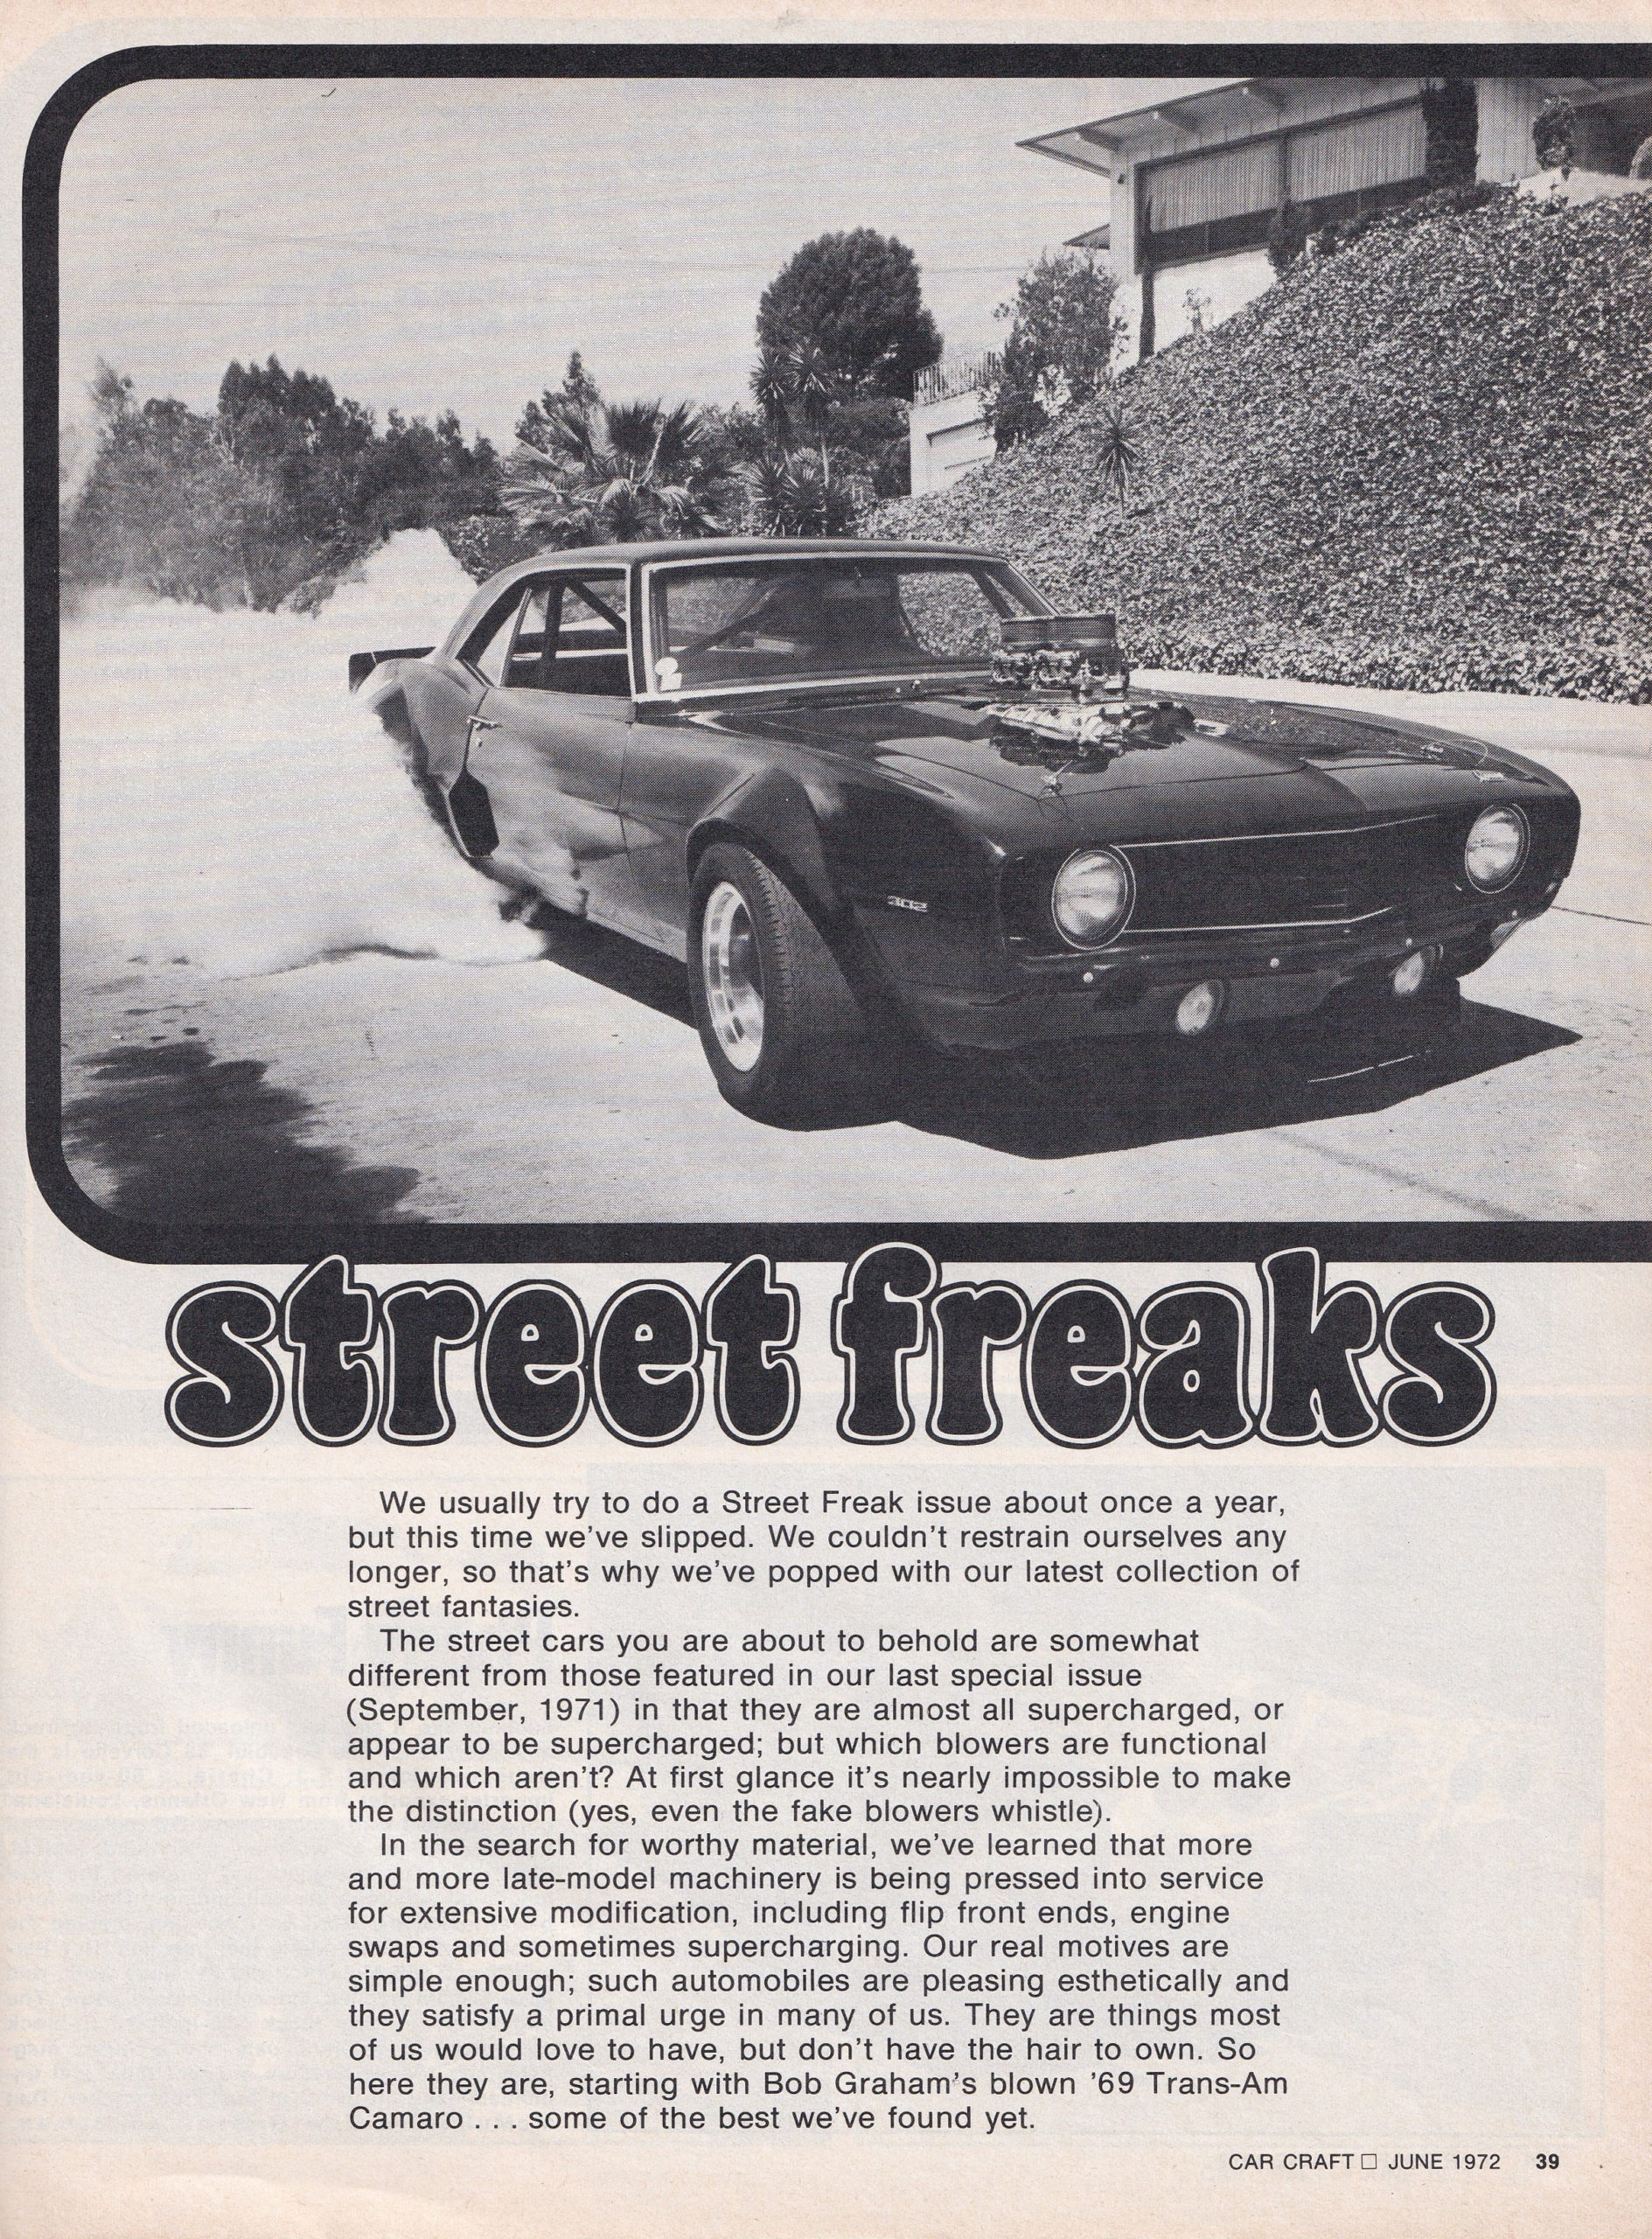 Street Freaks section from June 1972 issue of Car Craft, page 1.